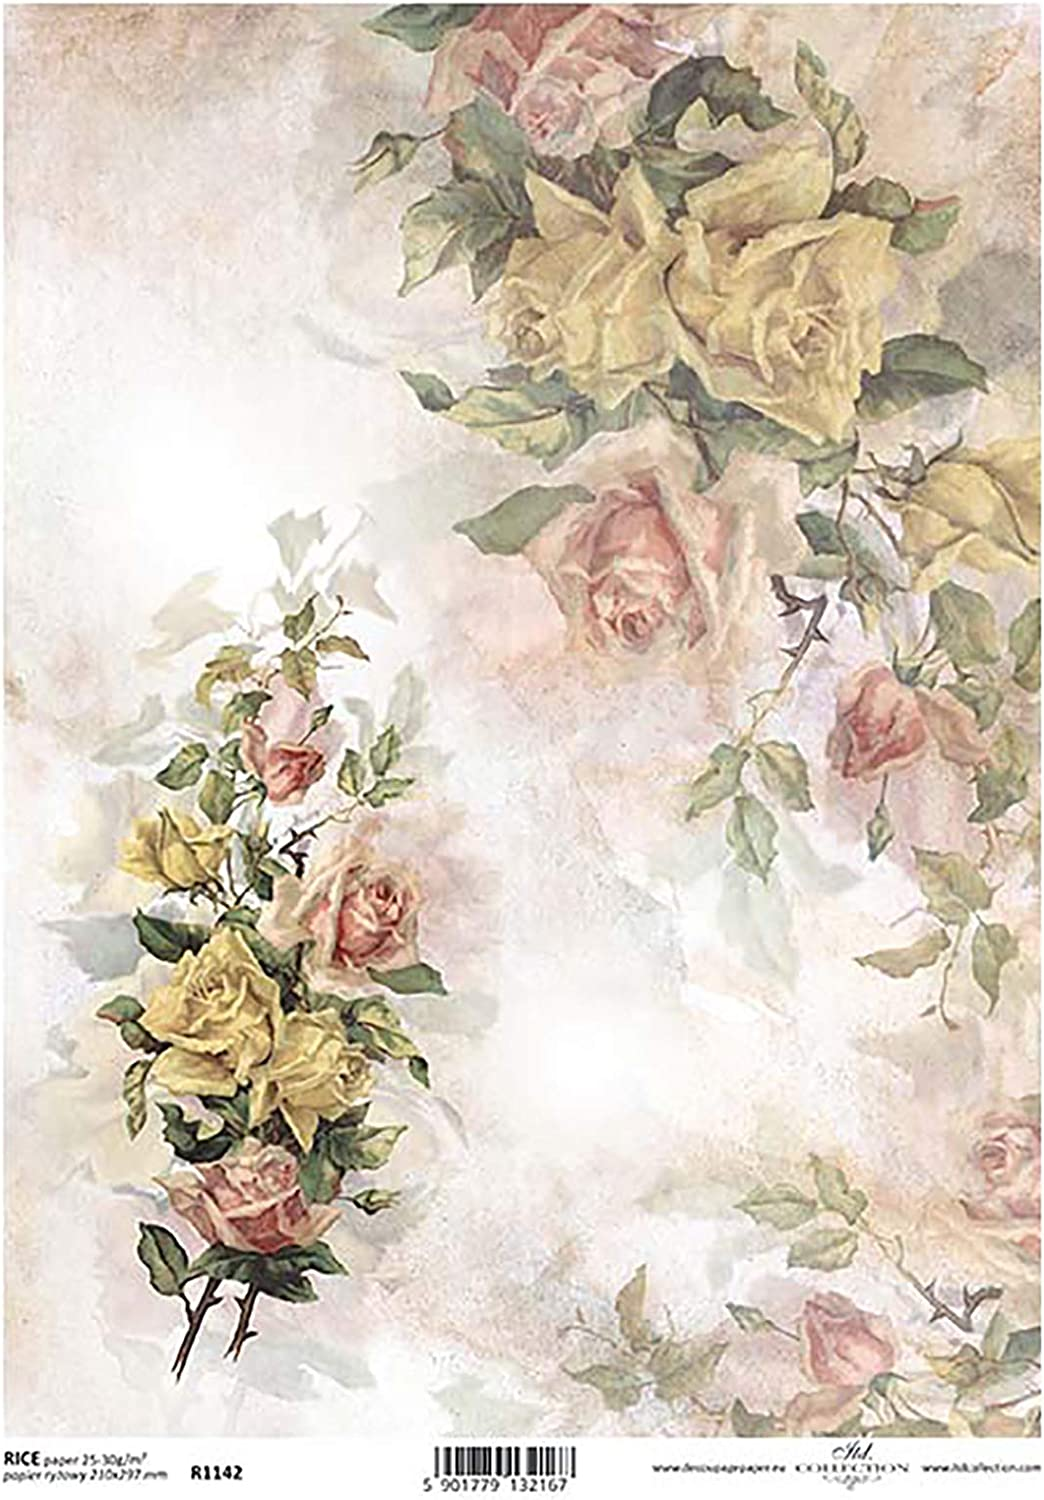 Yellow Pink Roses Flower Decoupage Rice Paper R1142-1 x A4 Sheet of decoupage Rice Paper